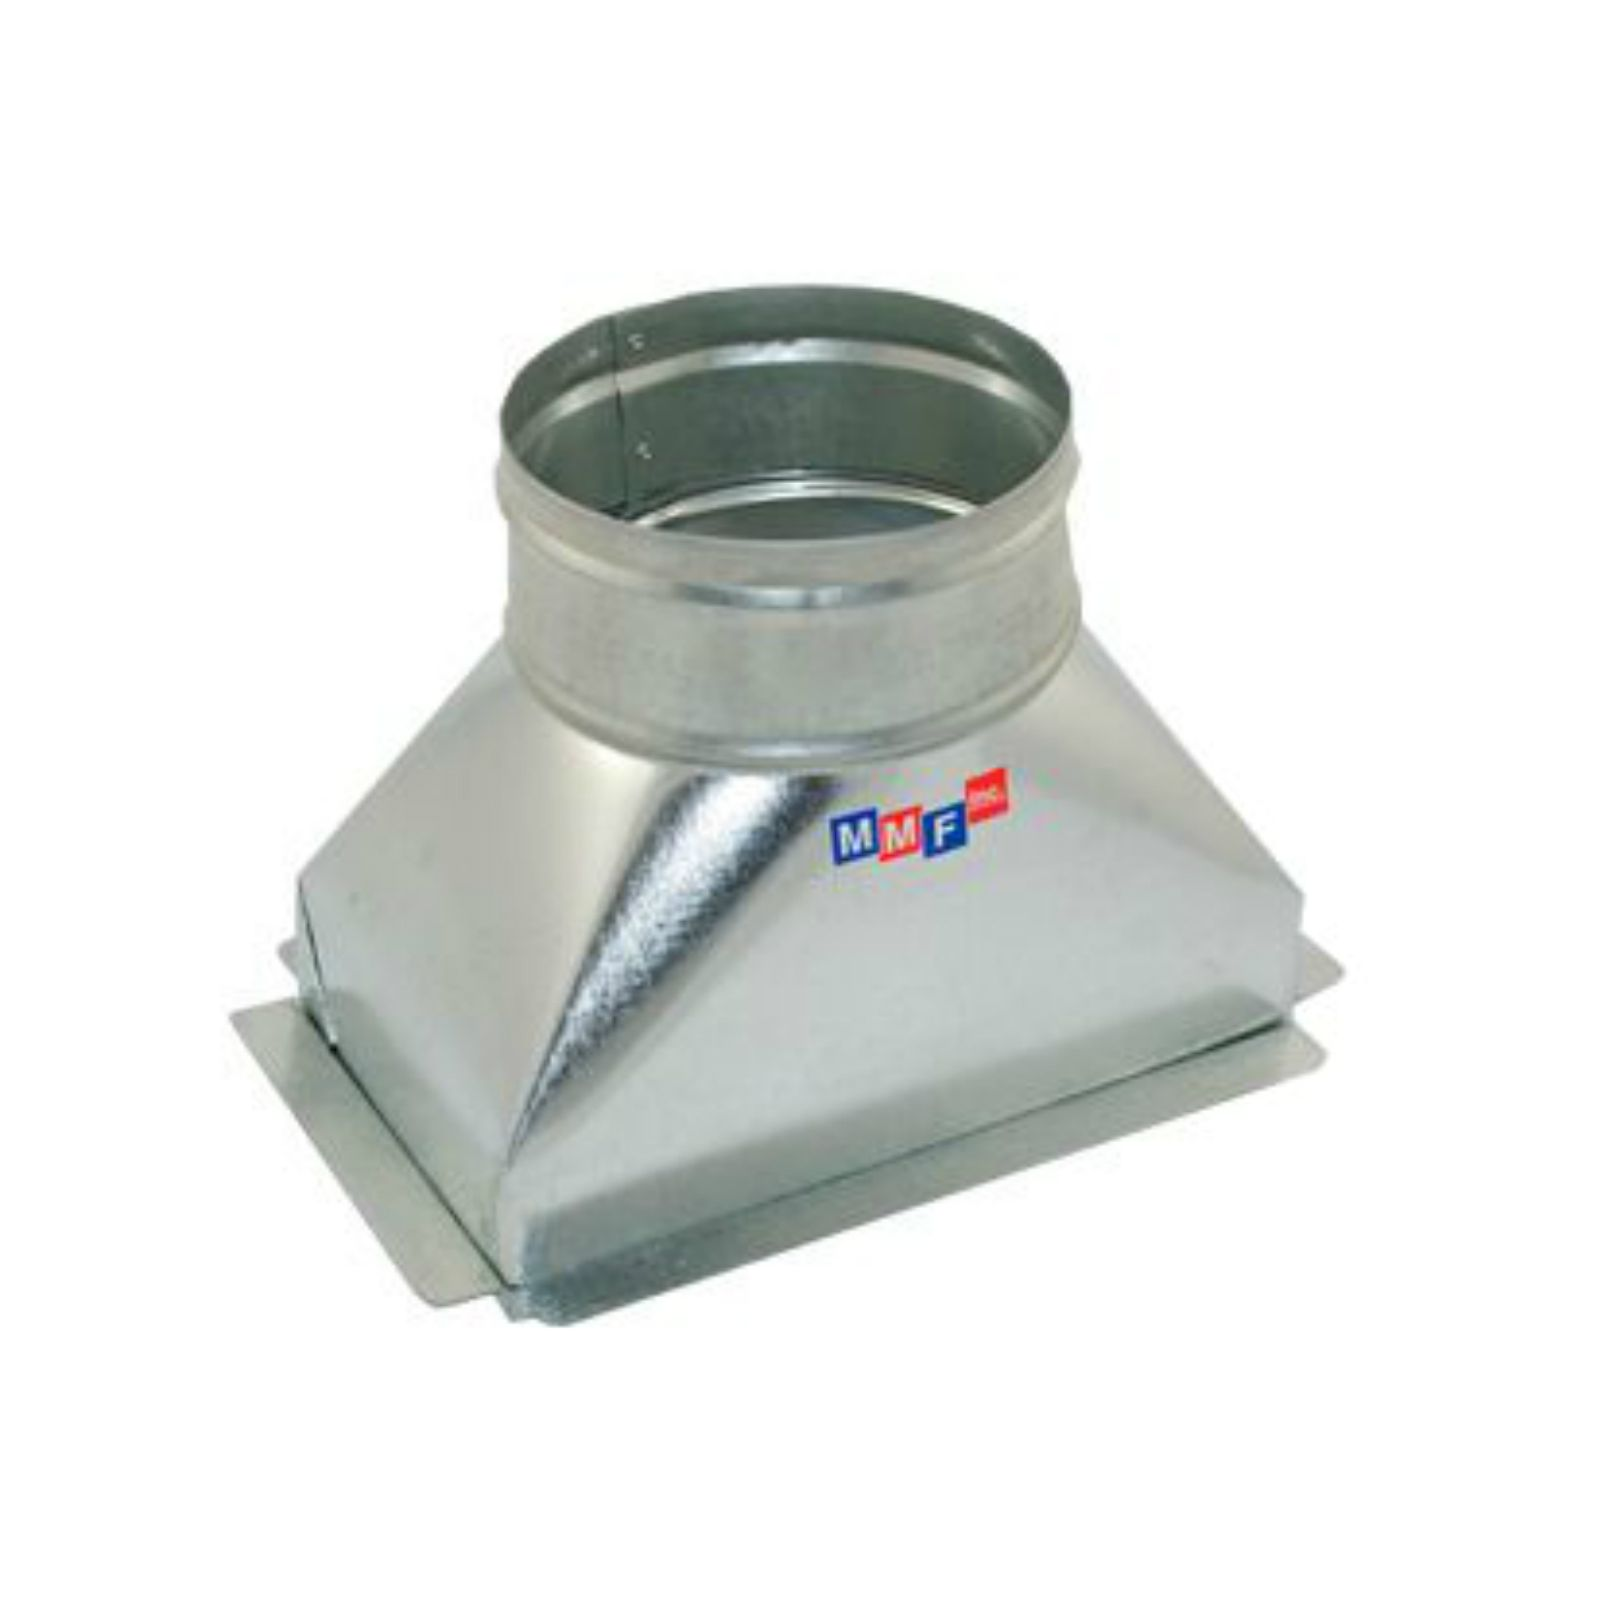 "Modular Metal BTSFG080605P - Sealed Floor Box - 30 Gauge - With Plaster Ground Flange 08"" X 06"" To 05"" Round"